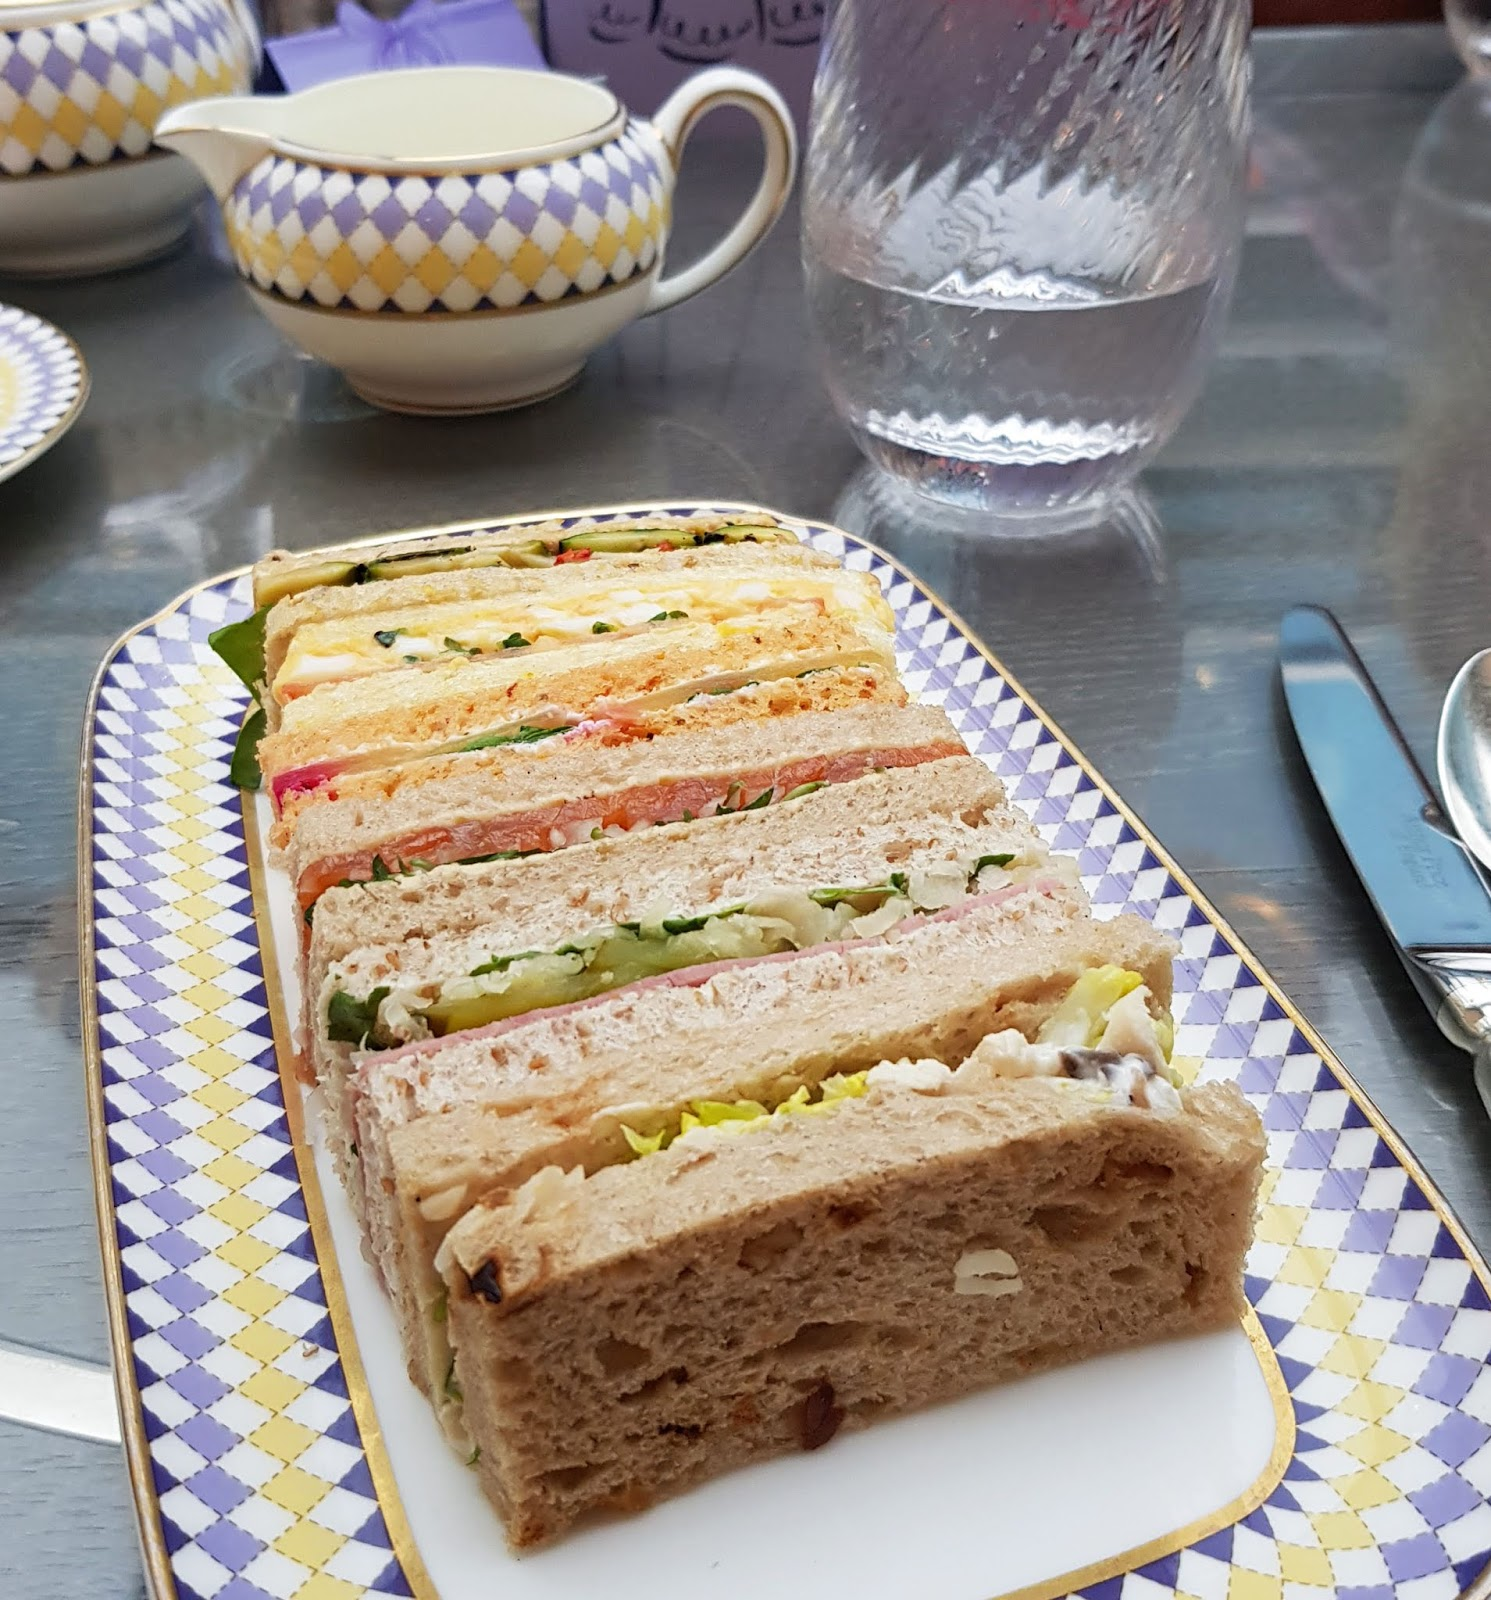 A plate of sandwiches starts the Berkeley Hotel Pret-a-Portea